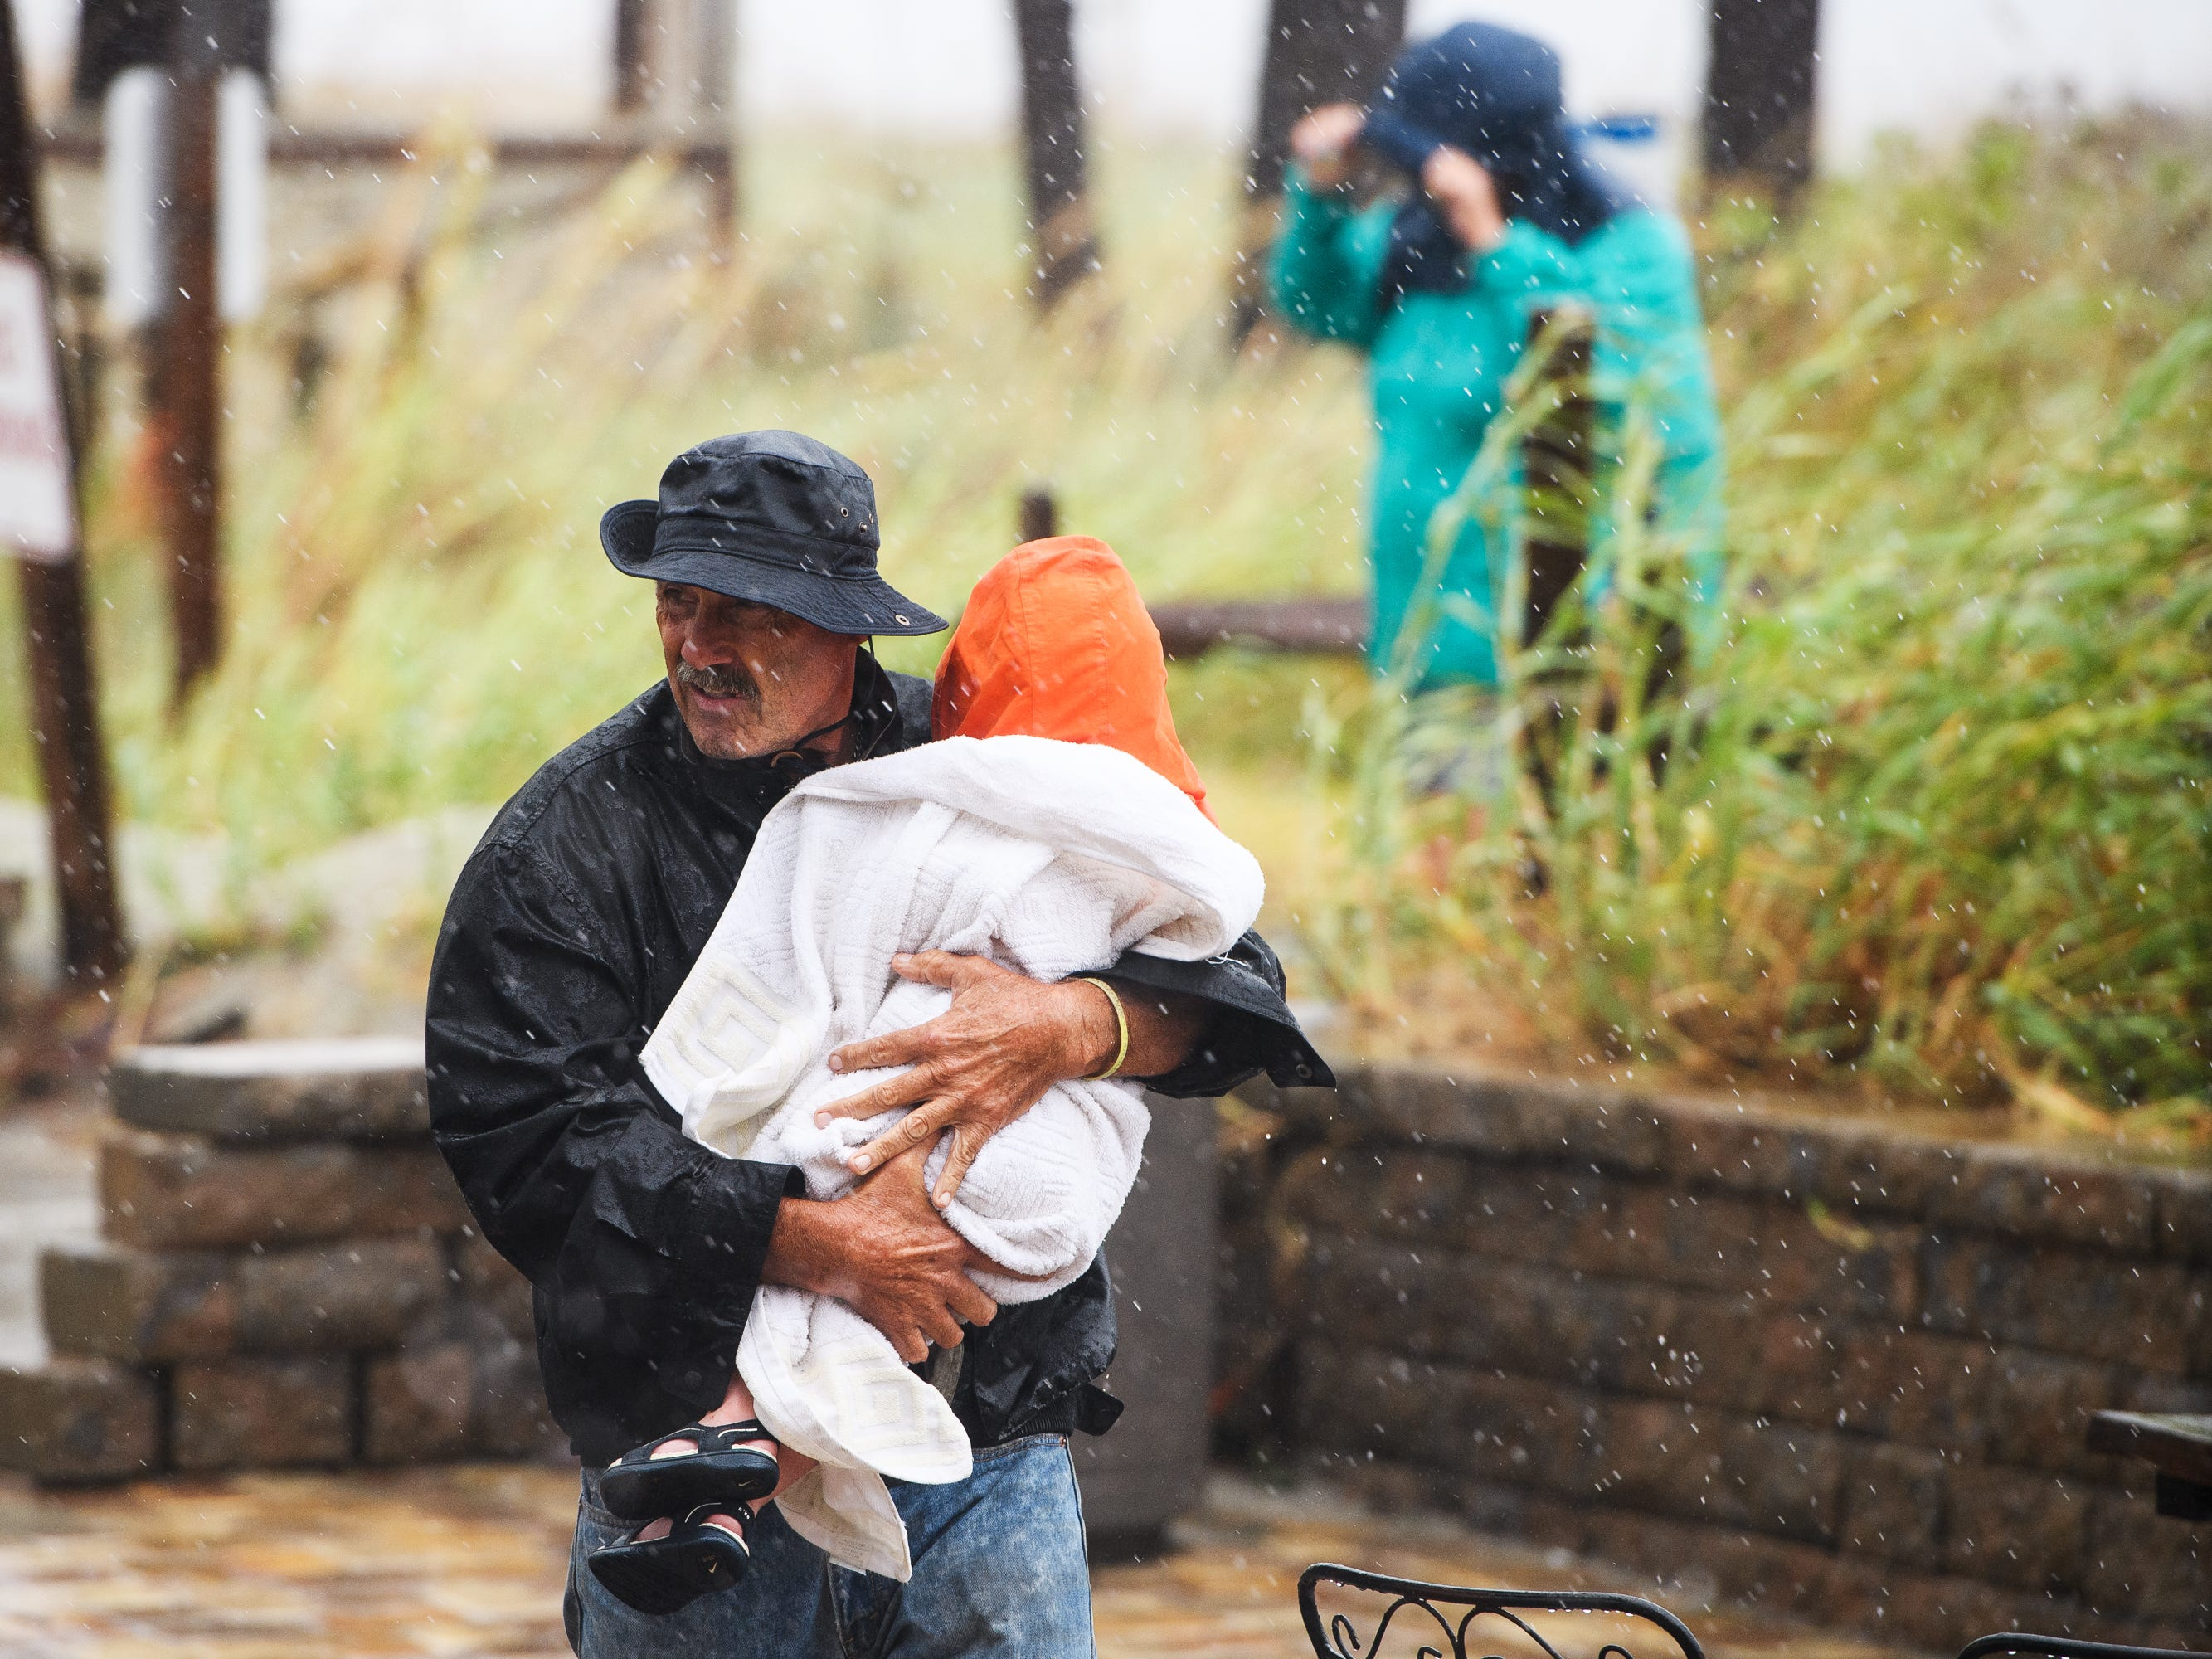 Joe Lewis carries two-year-old Piper Collins into a covered patio after checking out how Hurricane Florence conditions have affected the beach in North Myrtle Beach on Friday, Sept. 14, 2018.